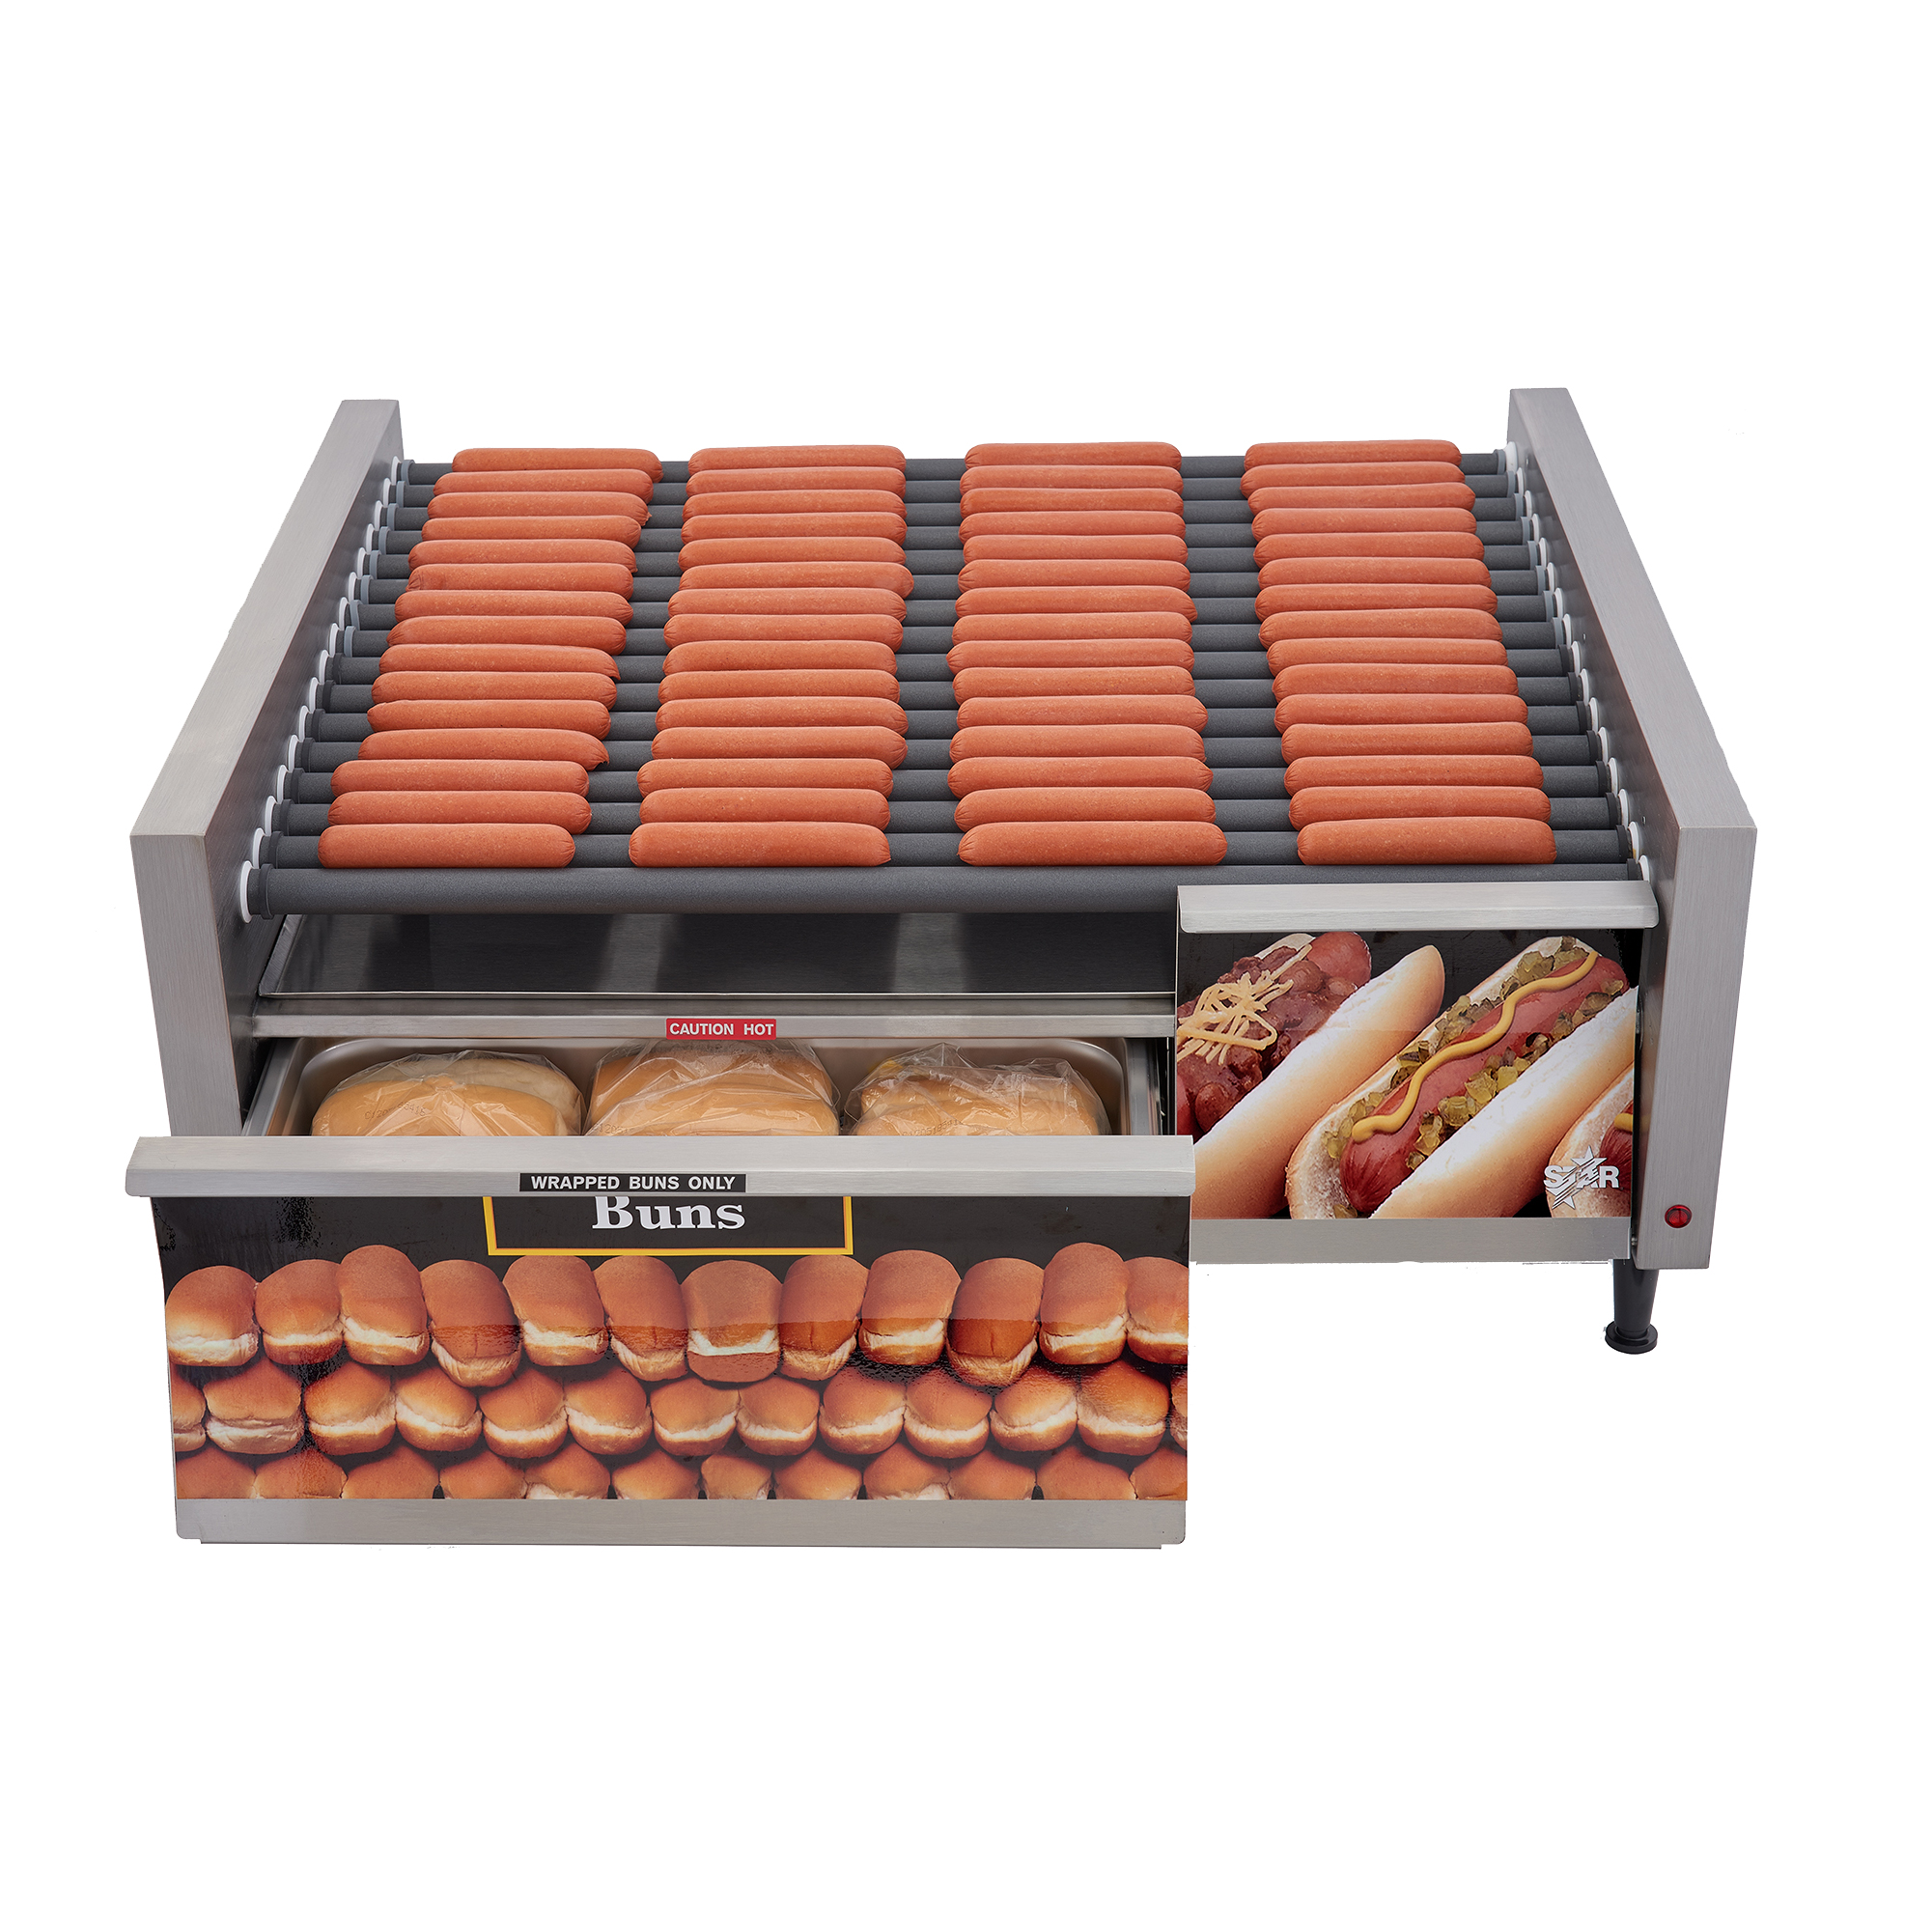 Star 75SCBDE hot dog grill